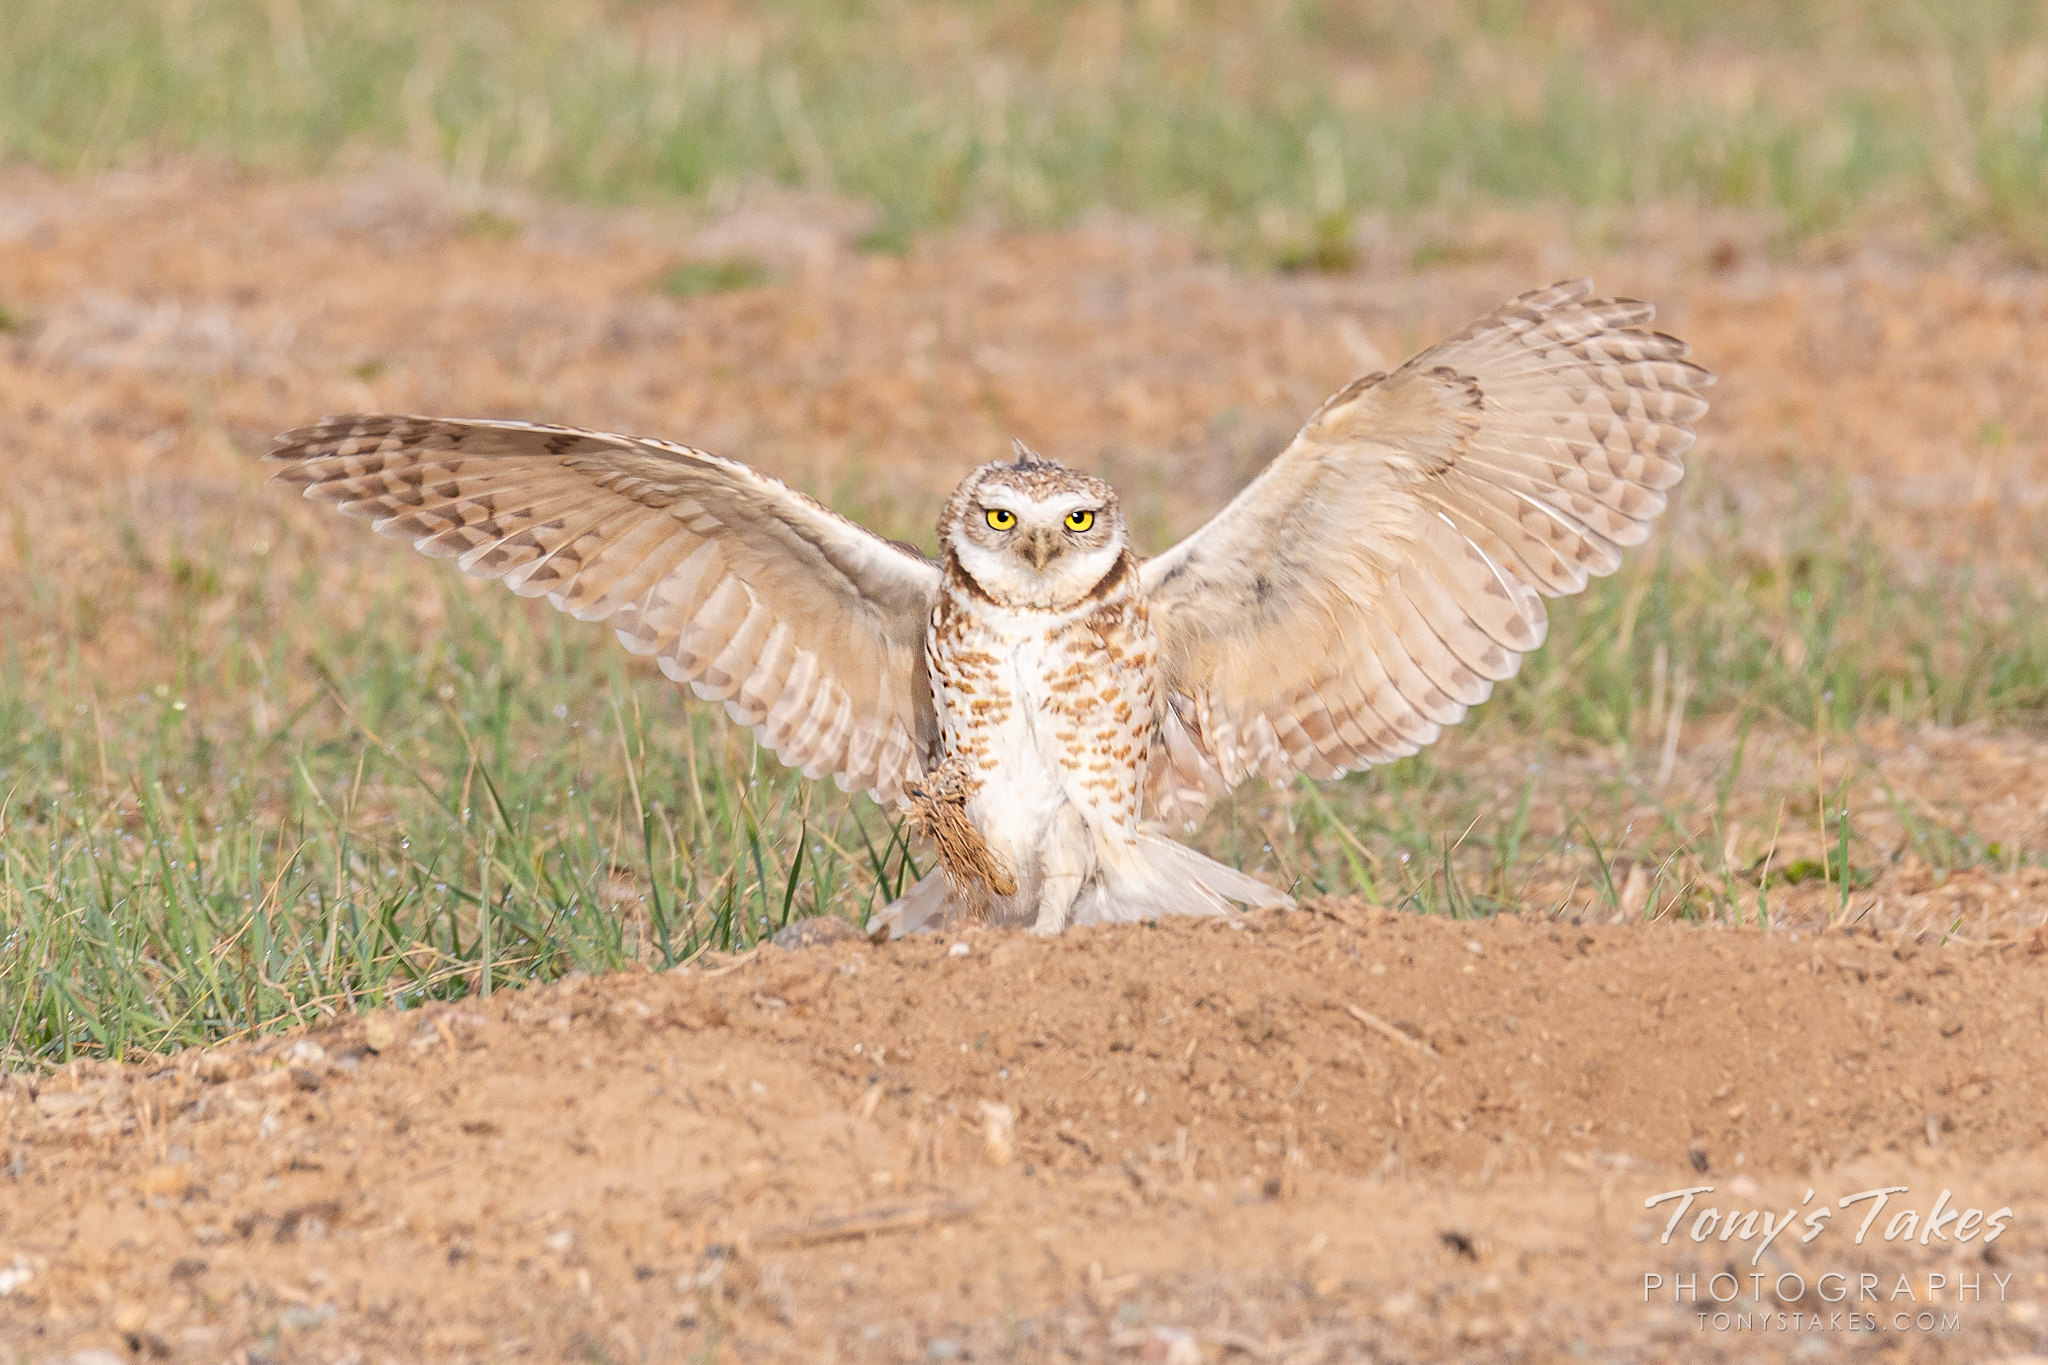 A male burrowing owl makes a show of its landing. (© Tony's Takes)